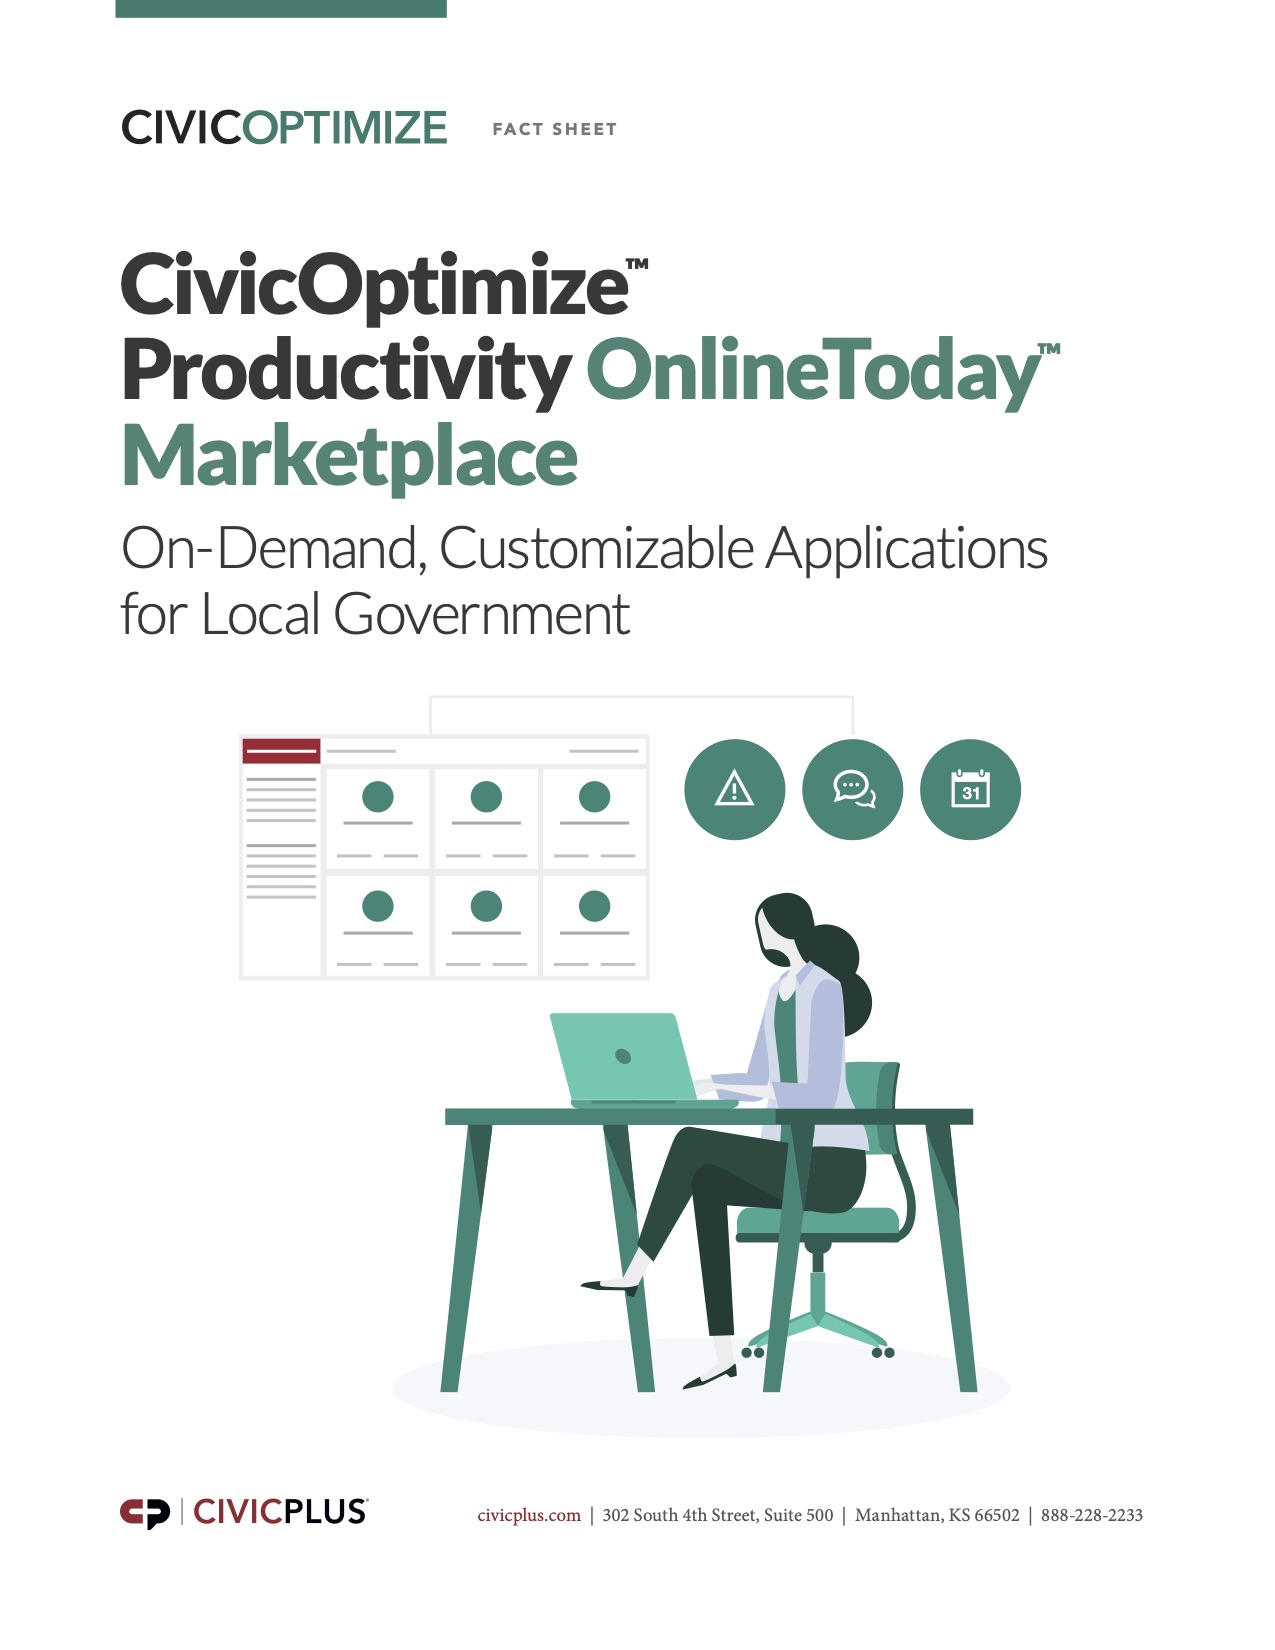 CivicOptimize Marketplace Fact Sheet